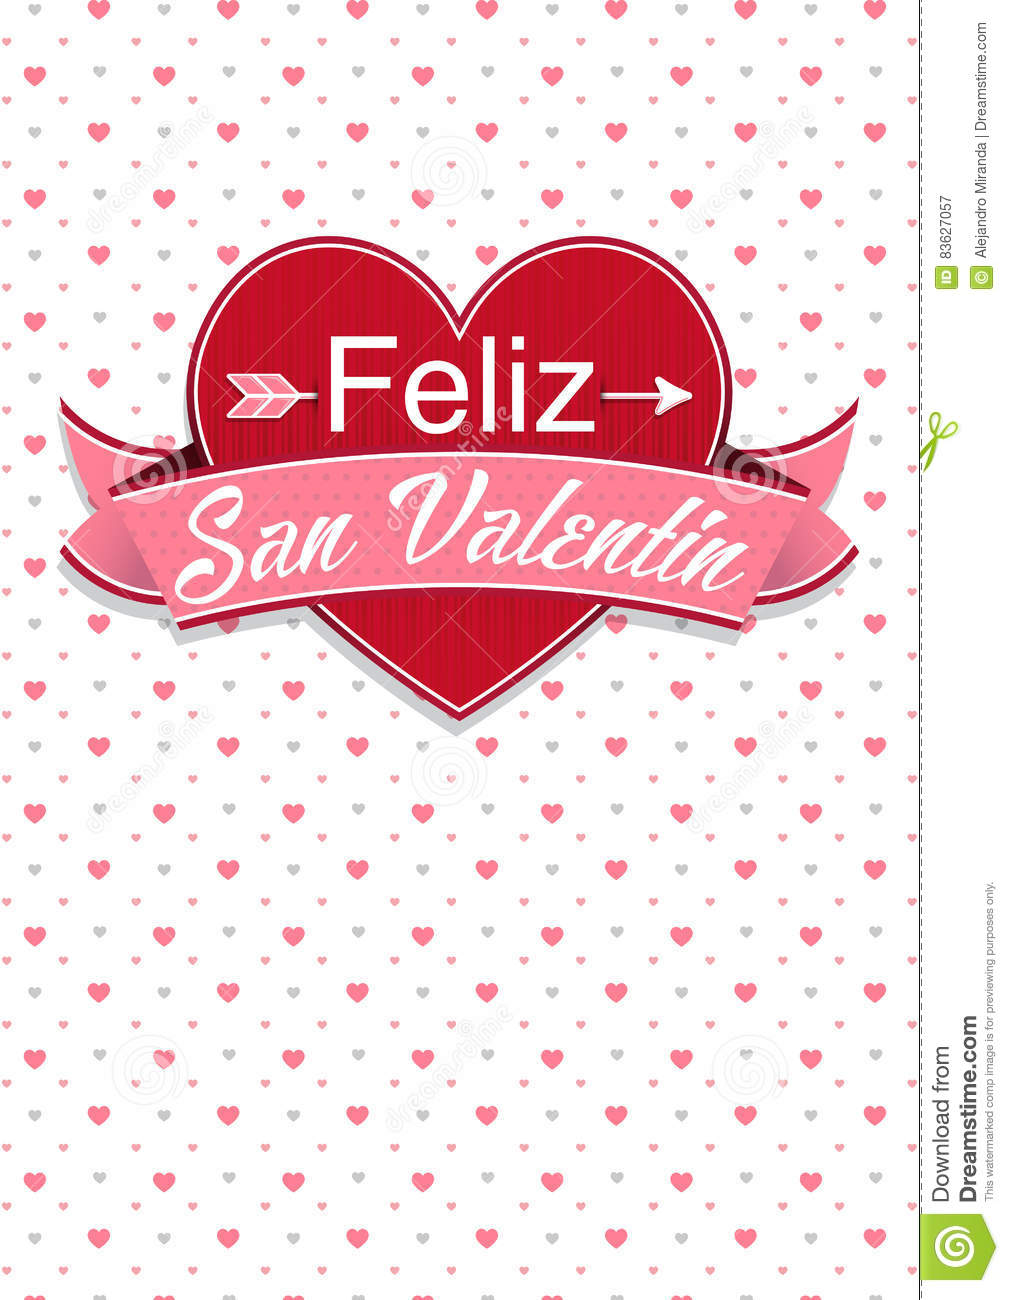 Card Cover With Message: Feliz San Valentin -Happy ...